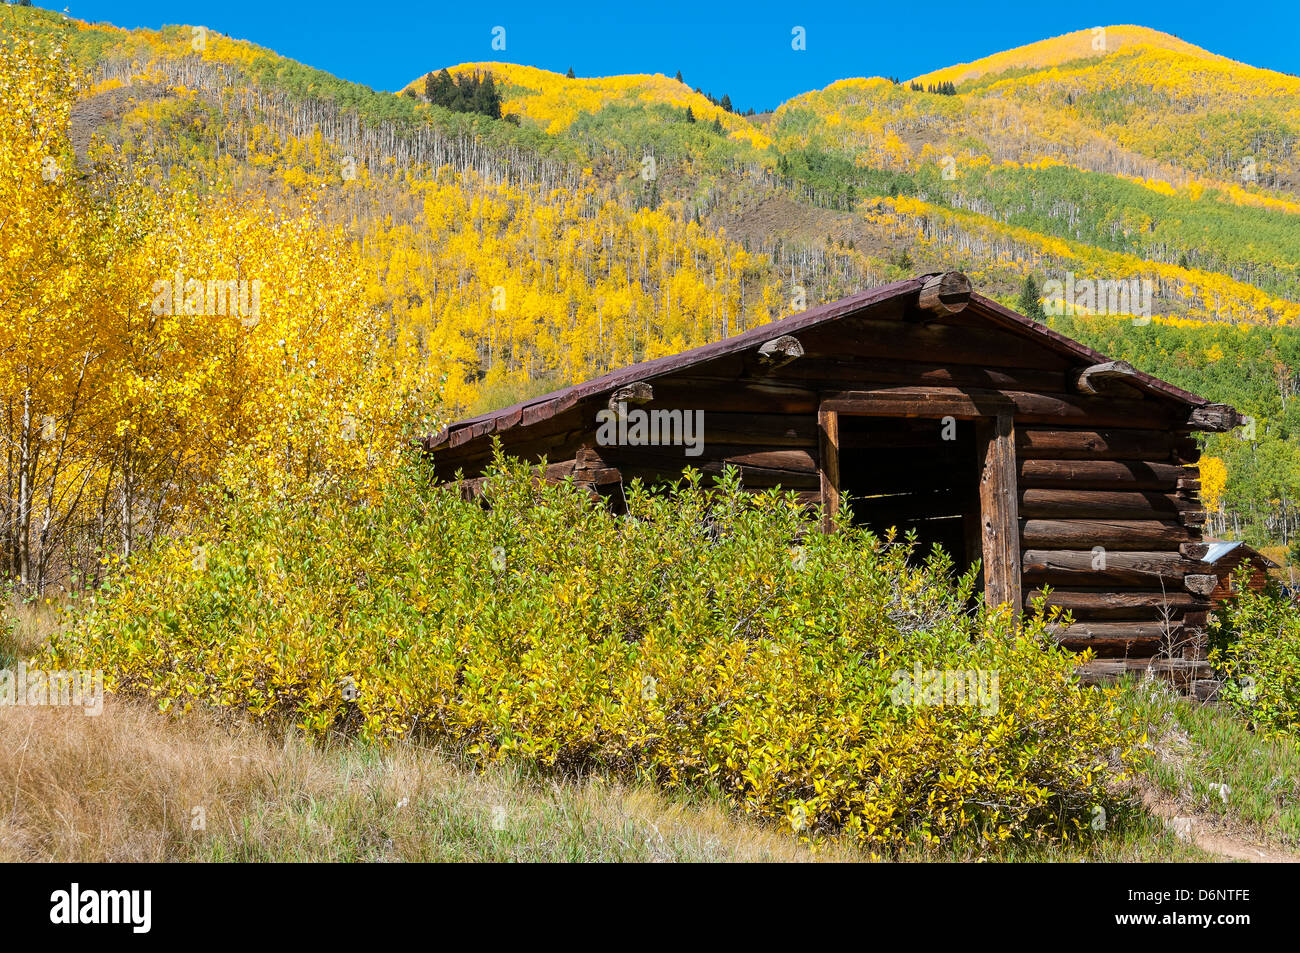 Buildings surrounded by autumn foliage, Ashcroft ghost town, Pitkin County near Aspen, Colorado. - Stock Image